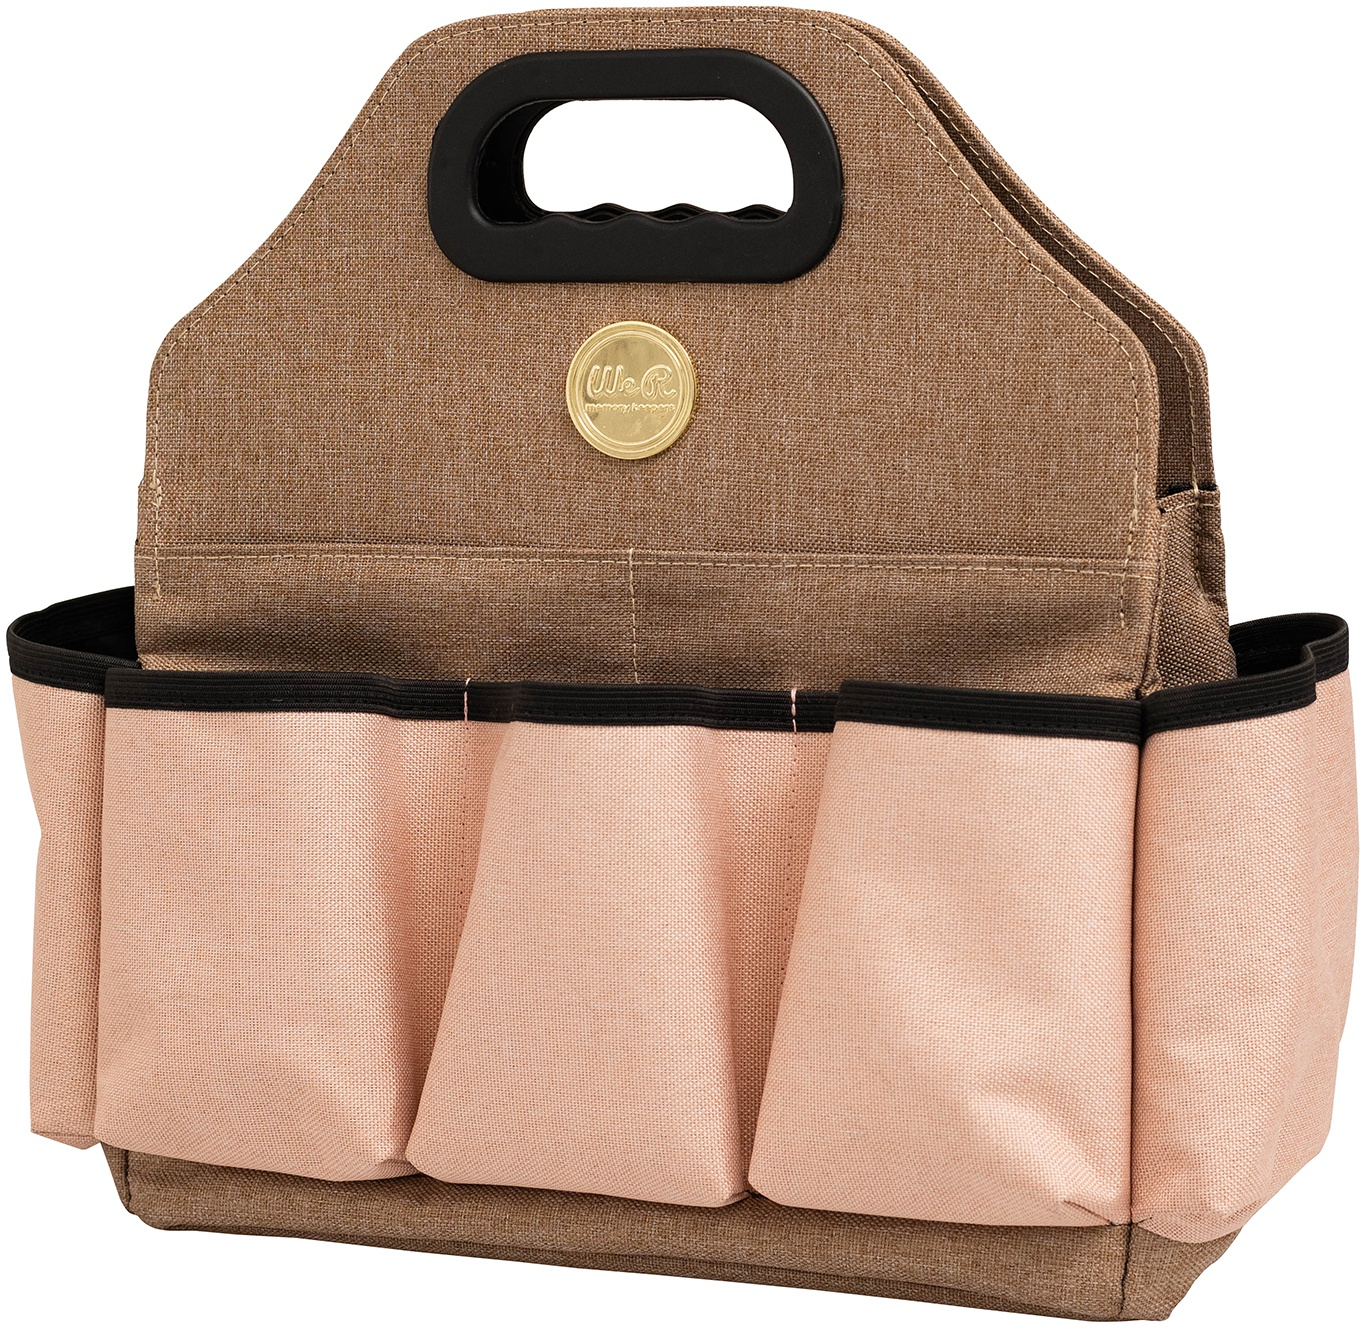 We R Memory Keepers Crafter's Tote Bag-Taupe & Pink